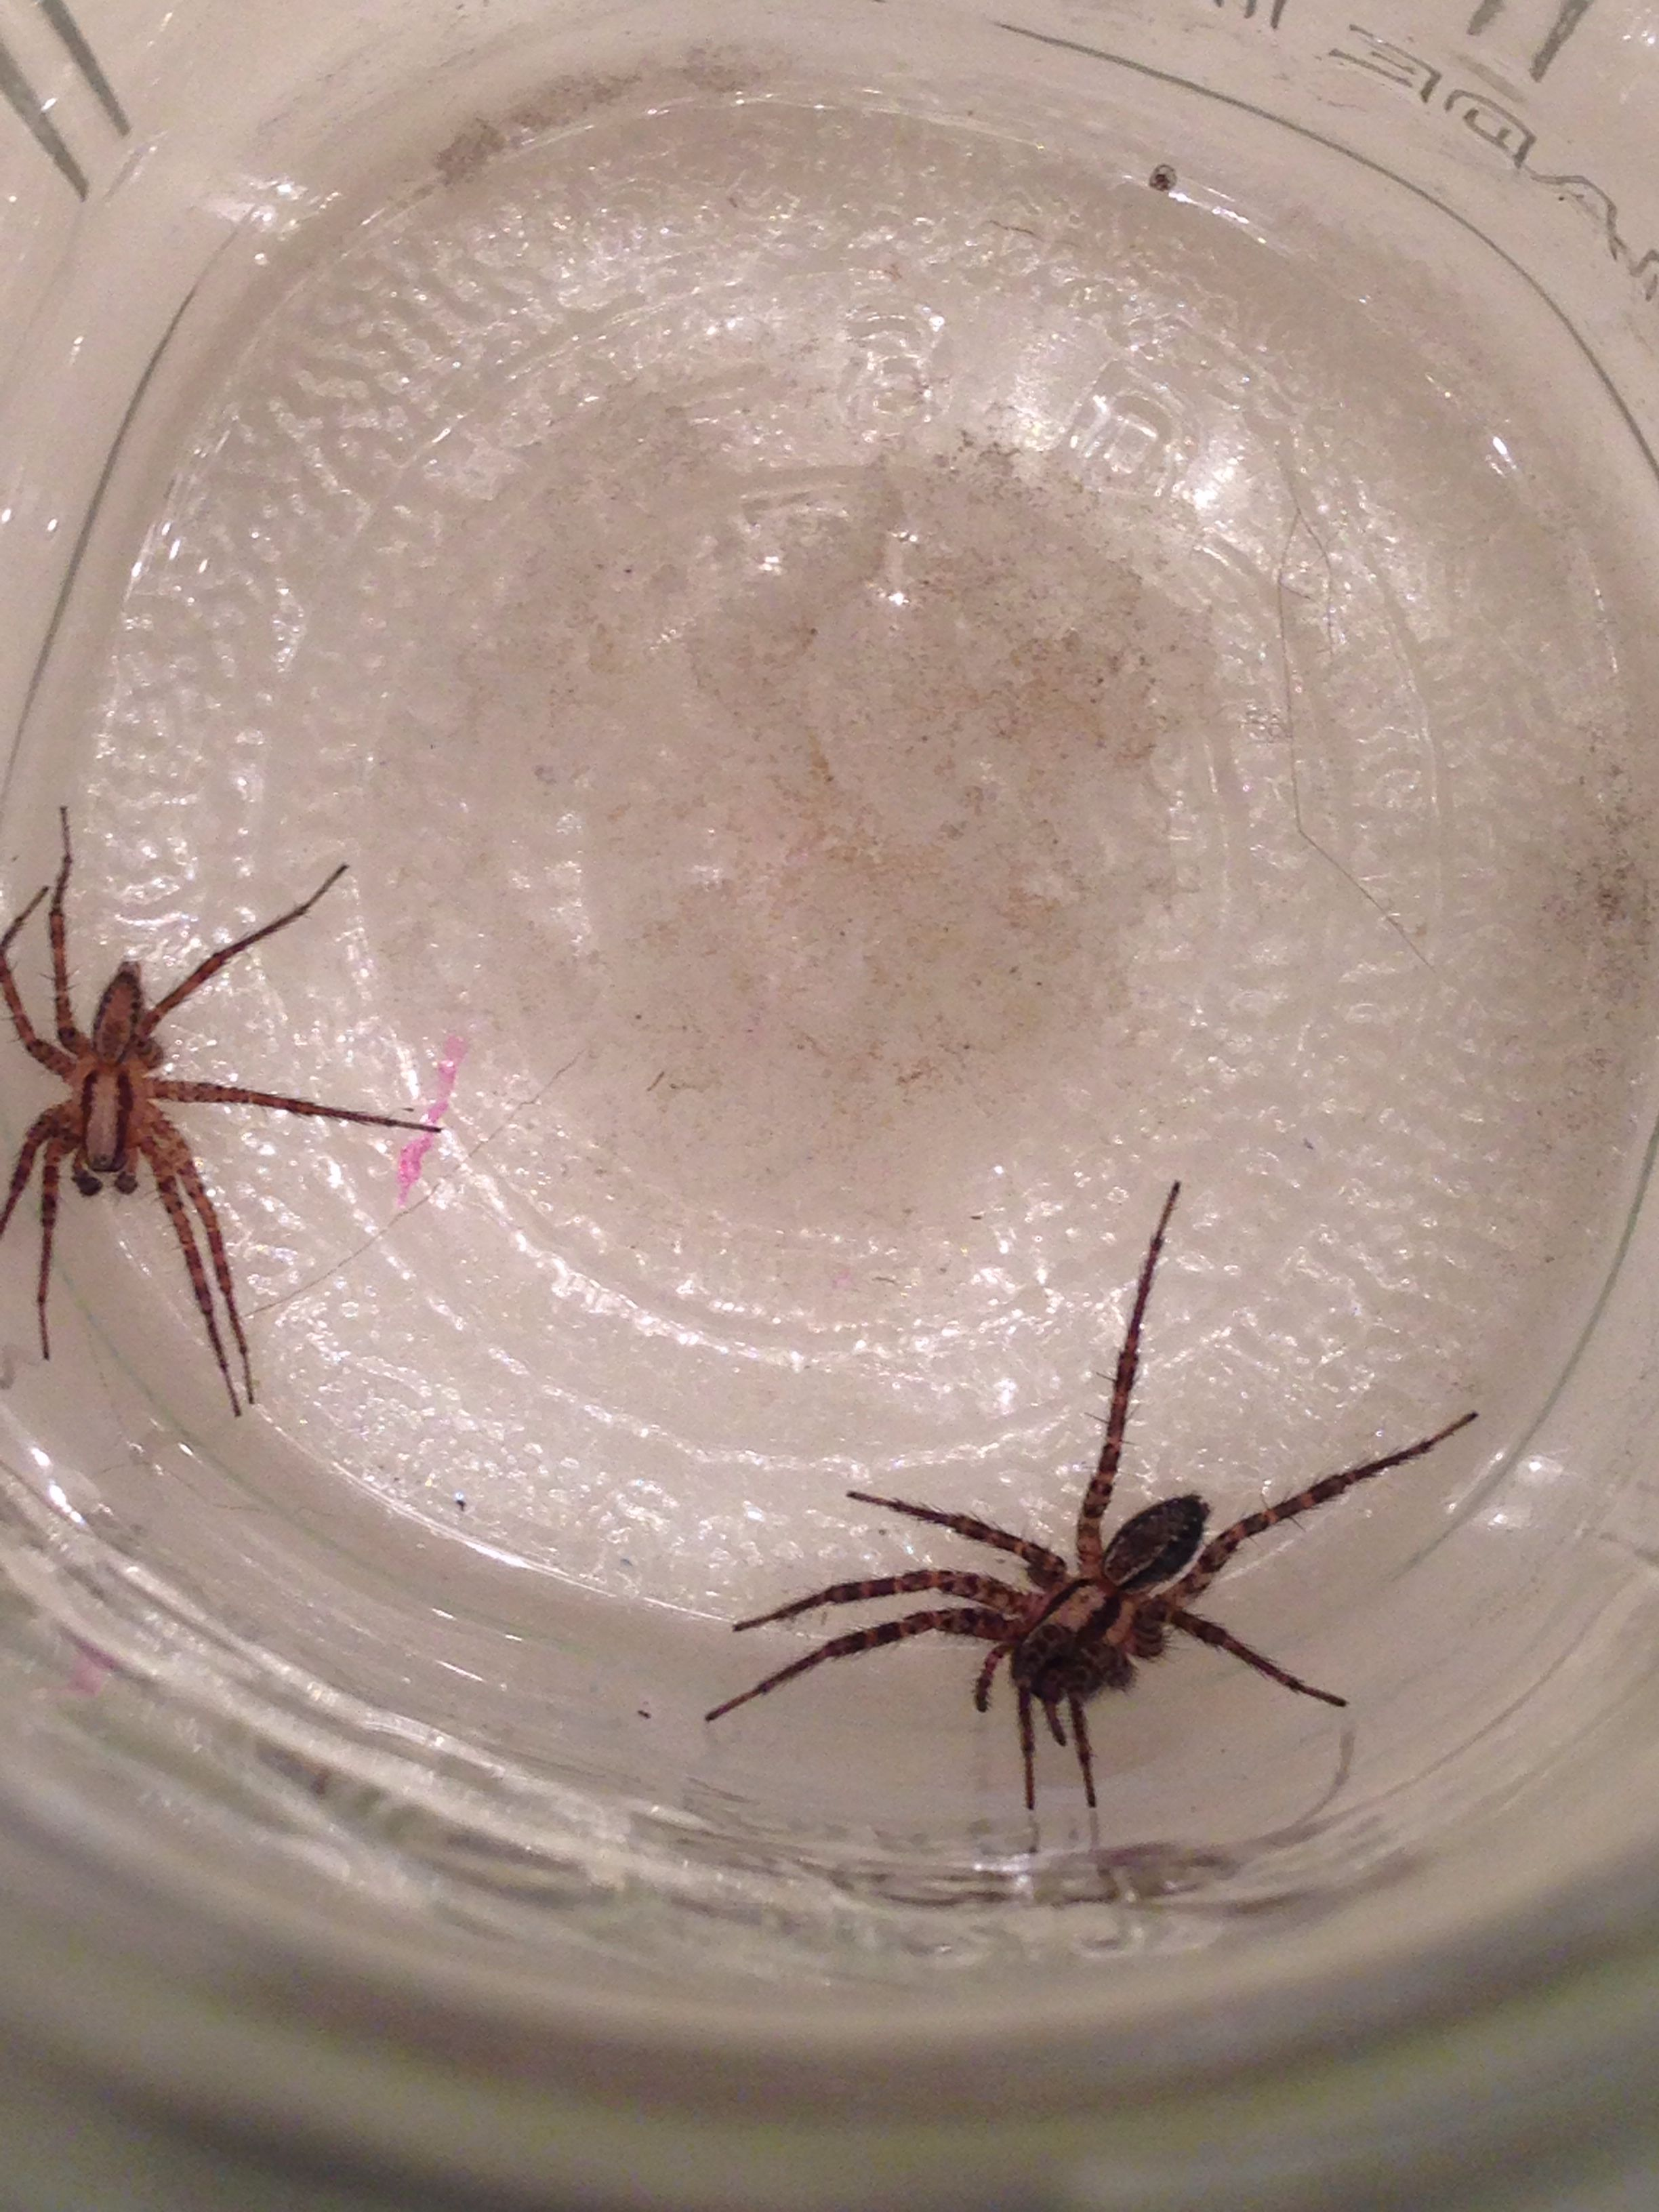 More gross spiders in my room( Spider, My room, Insects